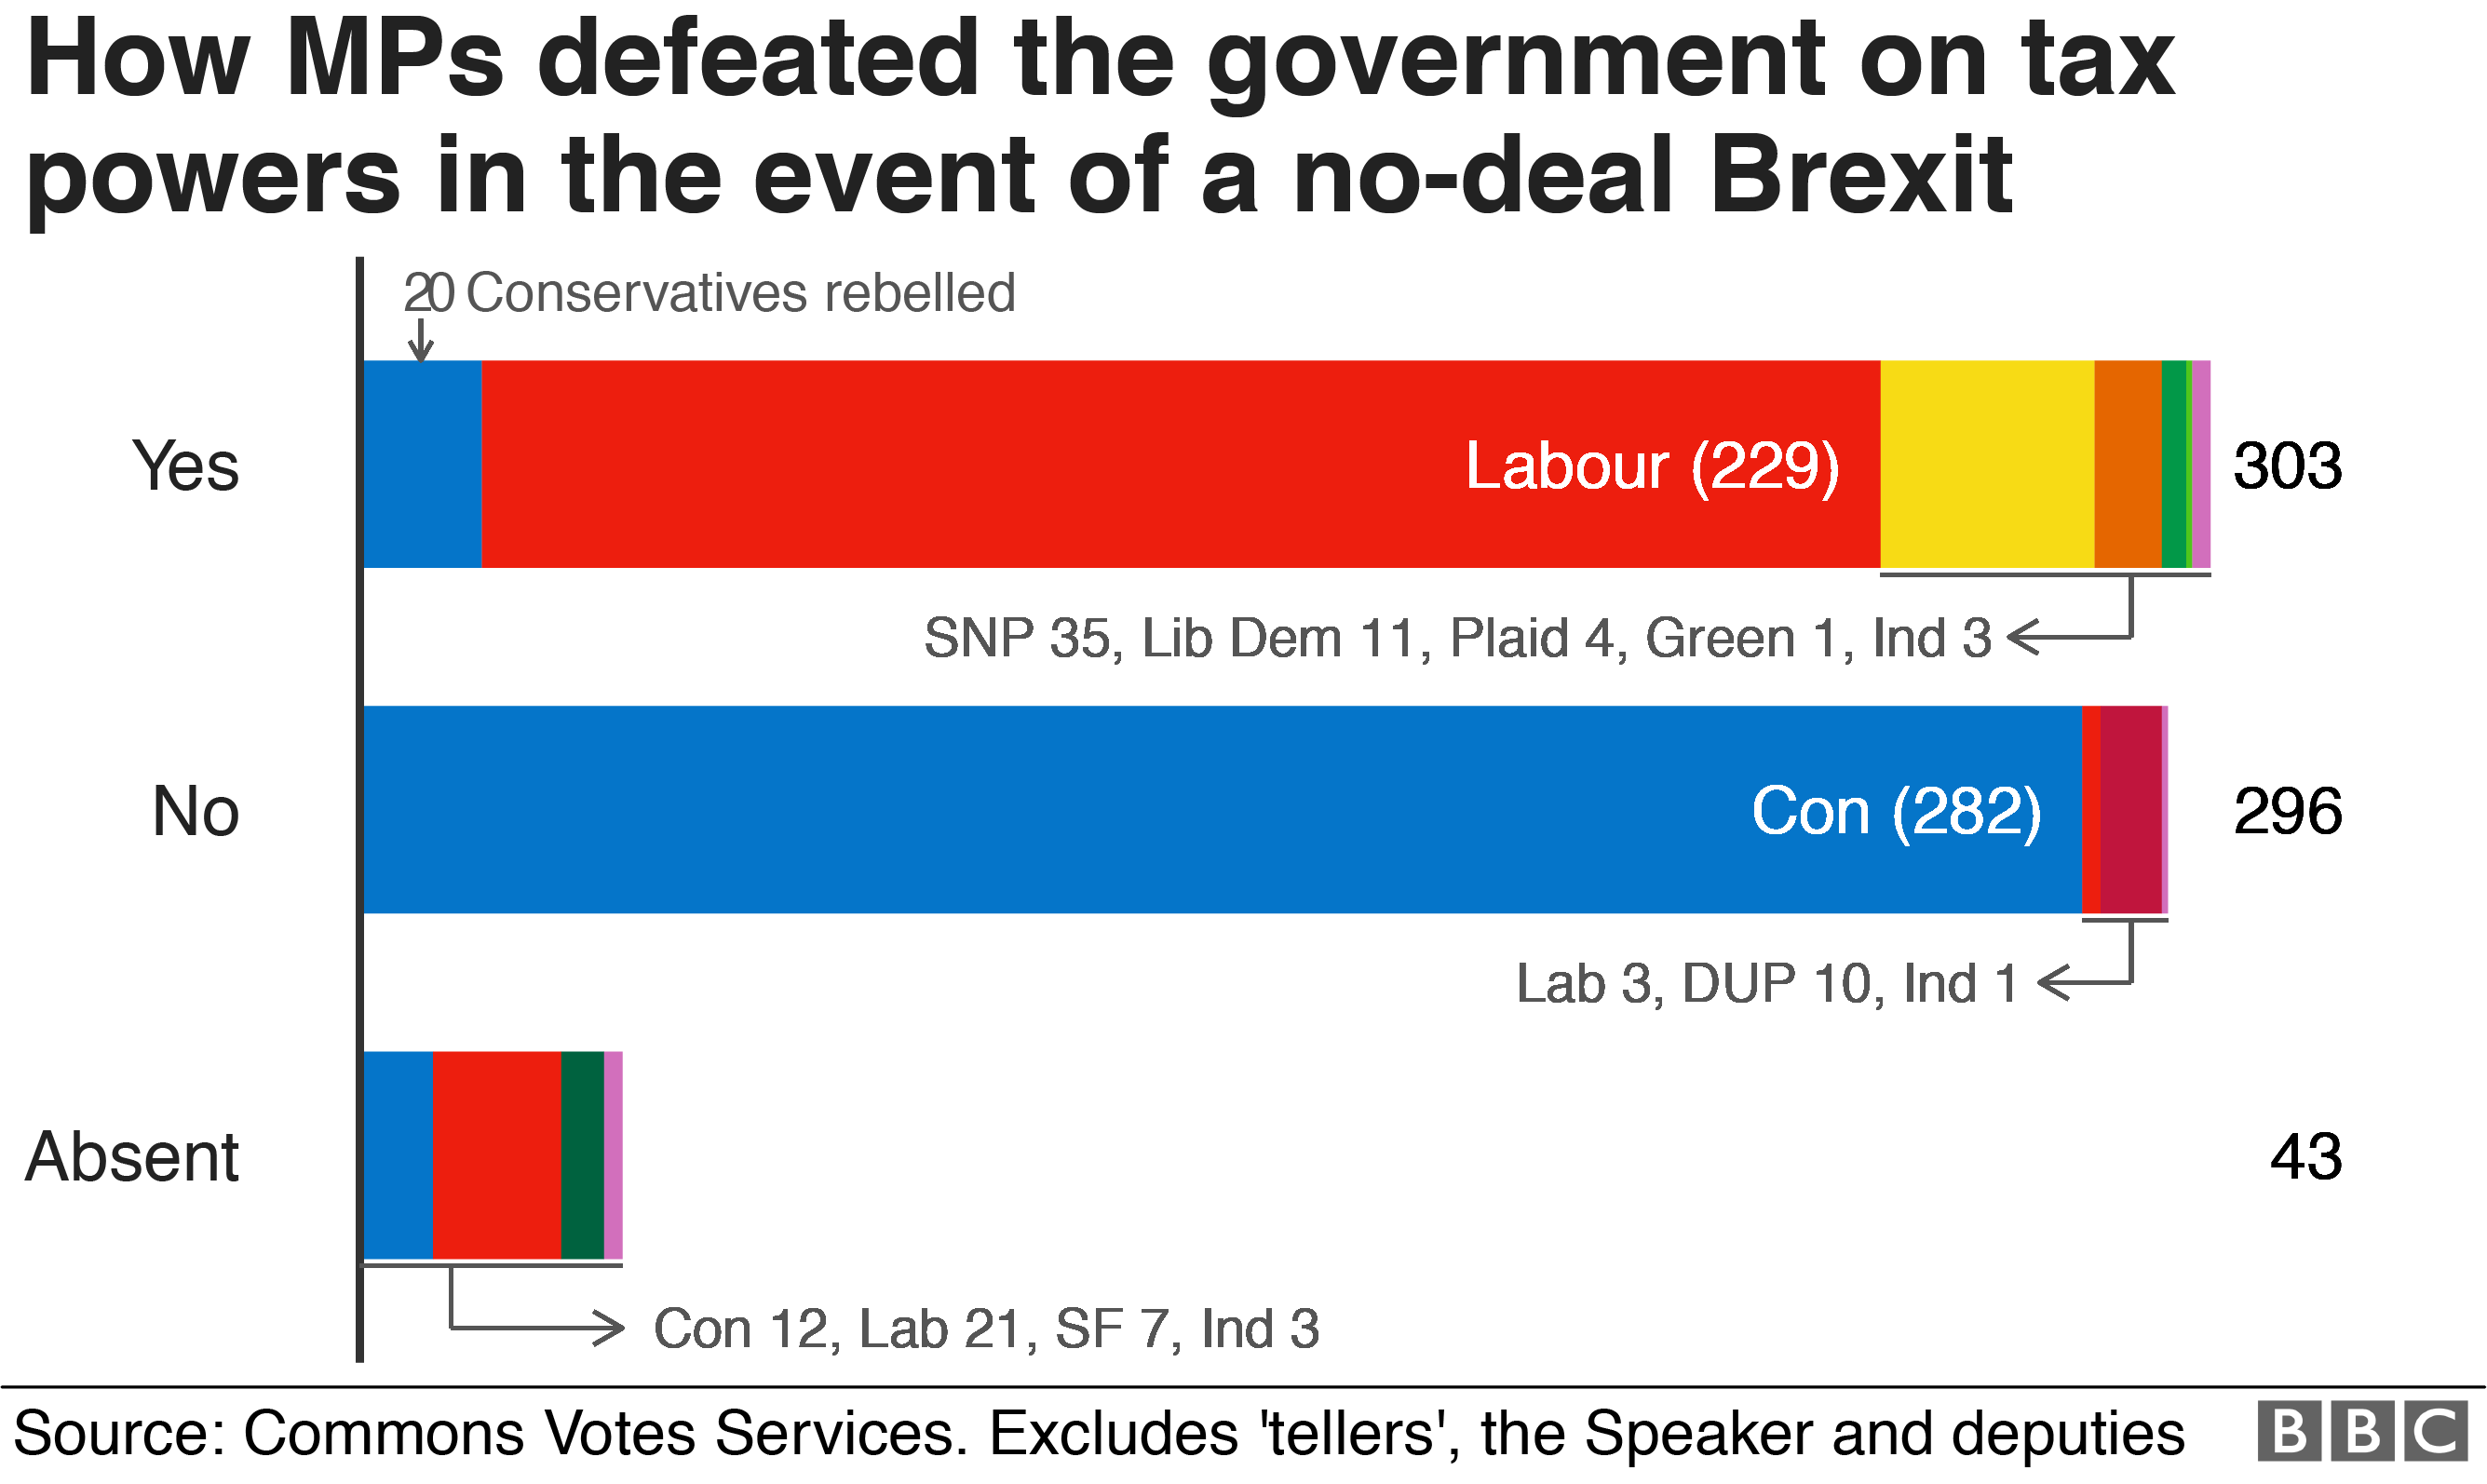 Bar chart showing breakdown of how MPs voted on tax powers in the event of no-deal Brexit